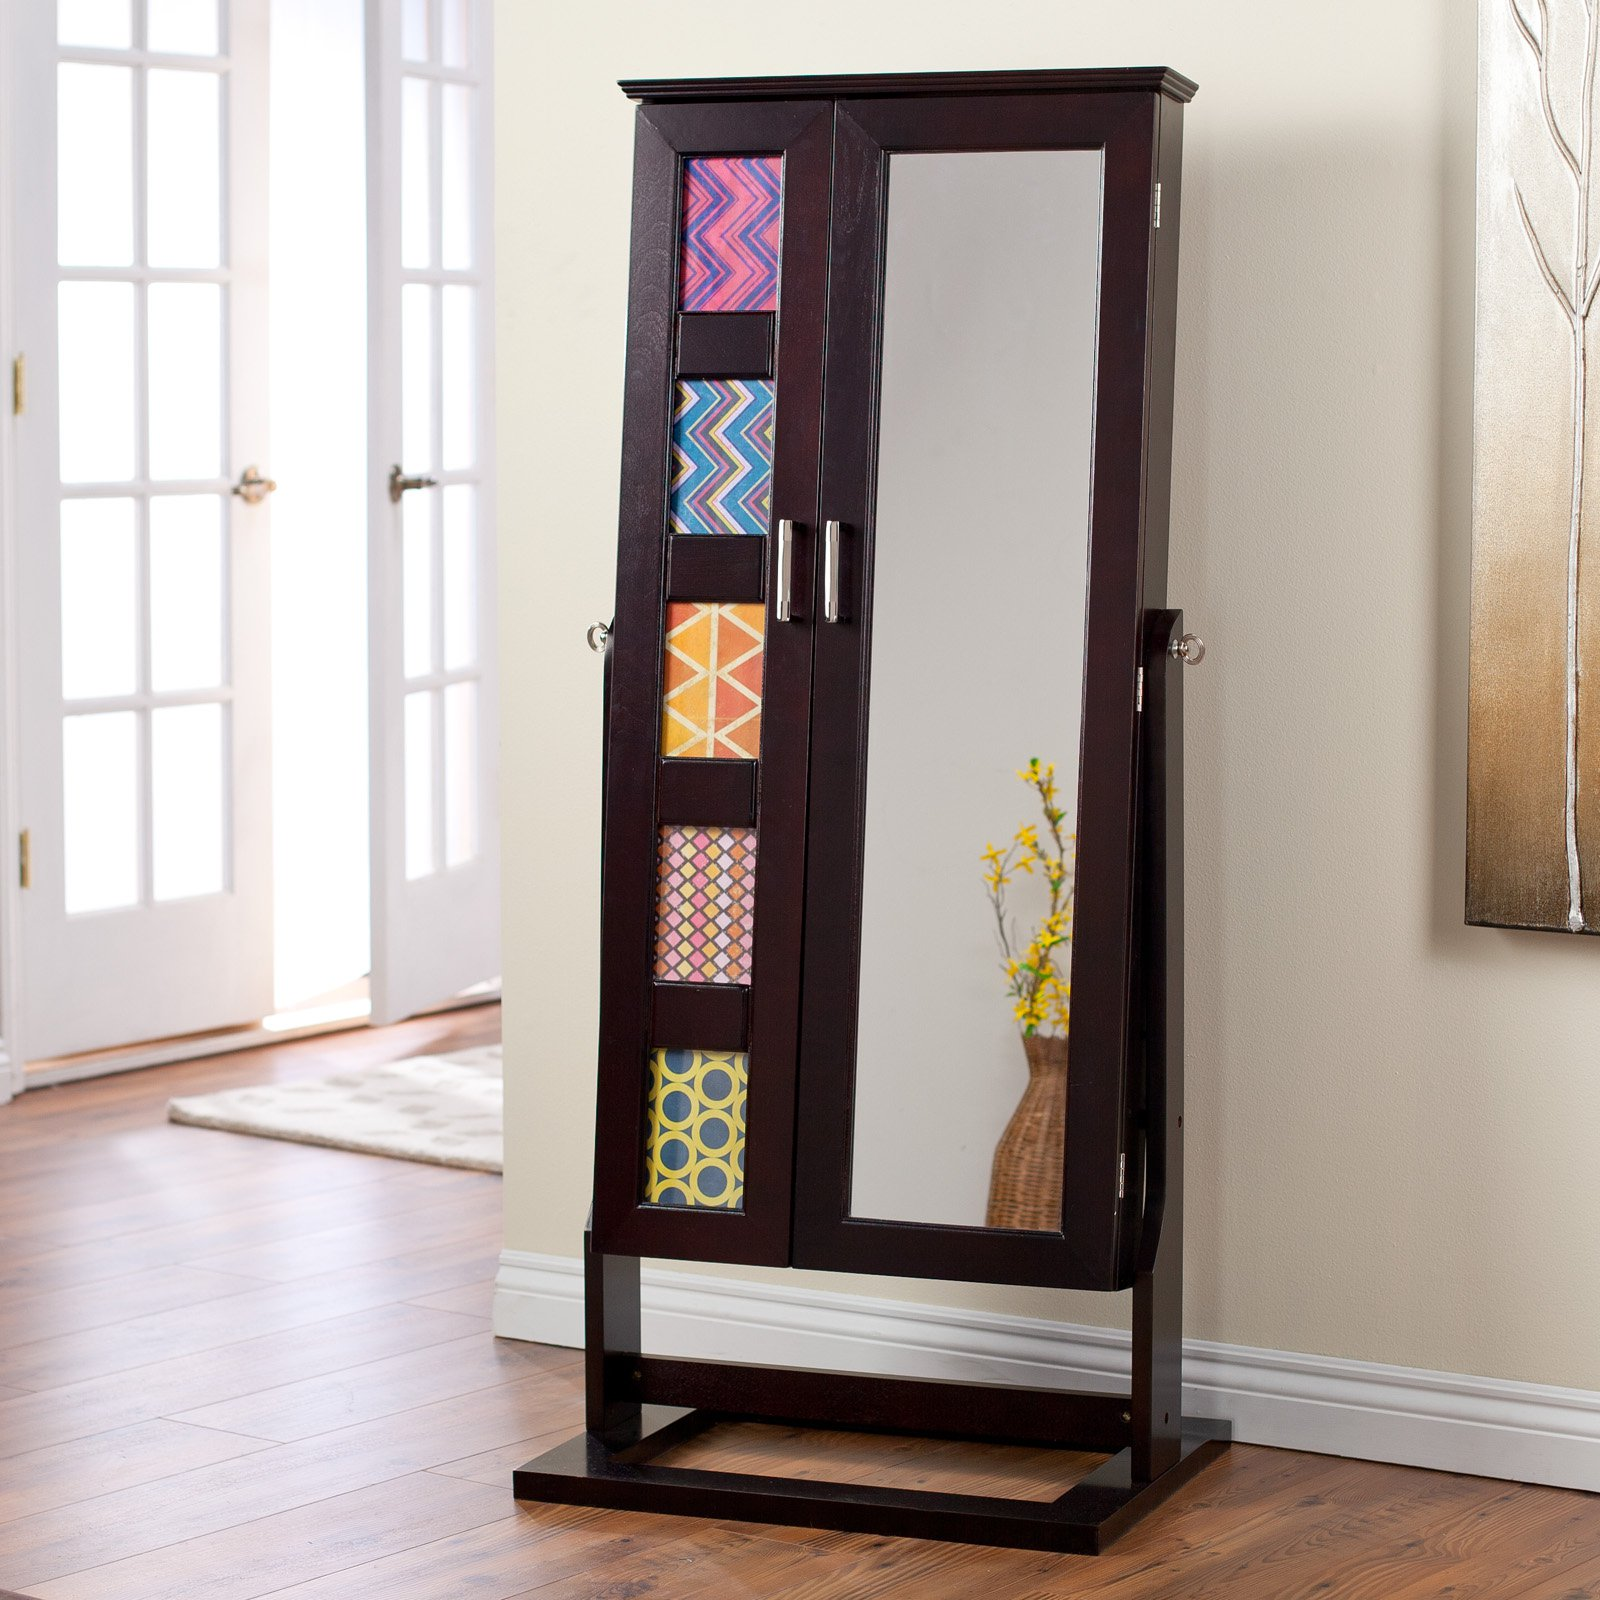 Belham Living Picture Frames Jewelry Armoire Cheval Mirror Espresso by East West Basics (HK) Ltd